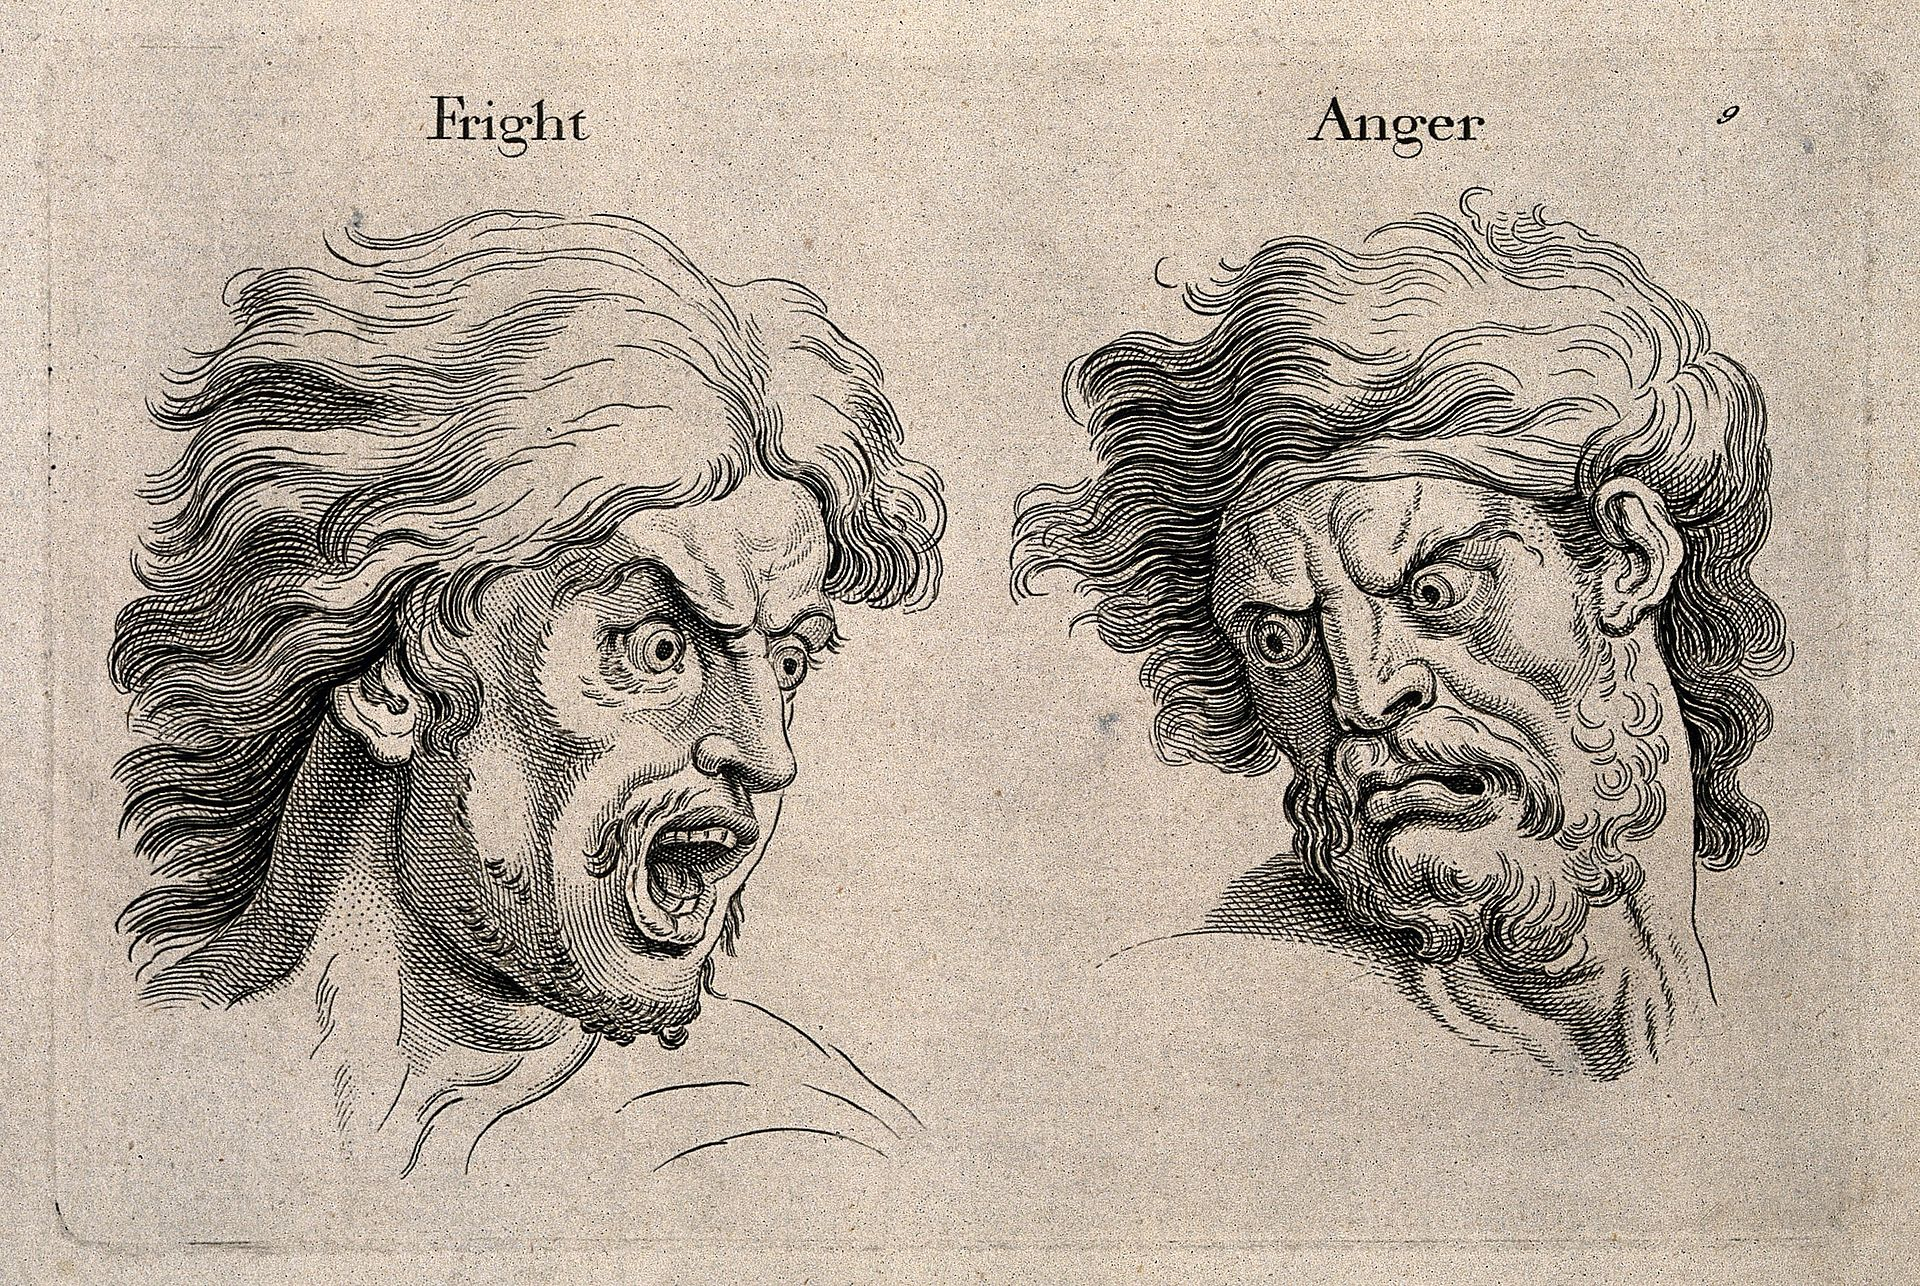 A_frightened_and_an_angry_face,_left_and_right_respectively._Wellcome_V0009326